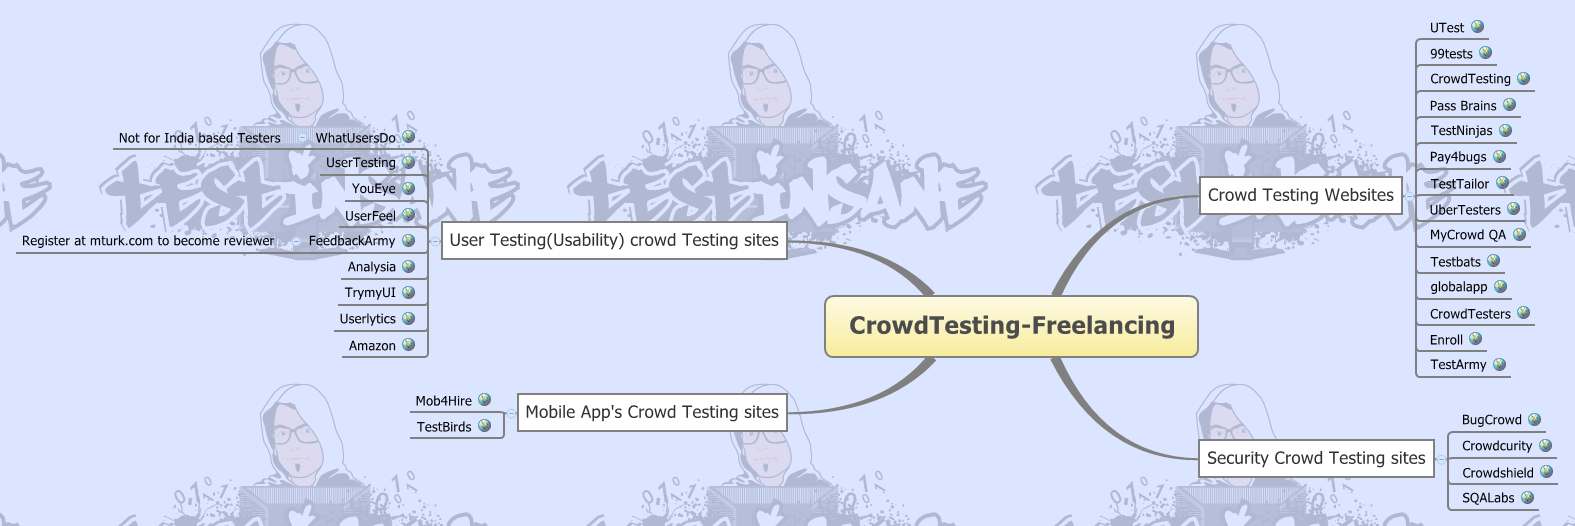 CrowdTesting & Freelancing - Software Testing